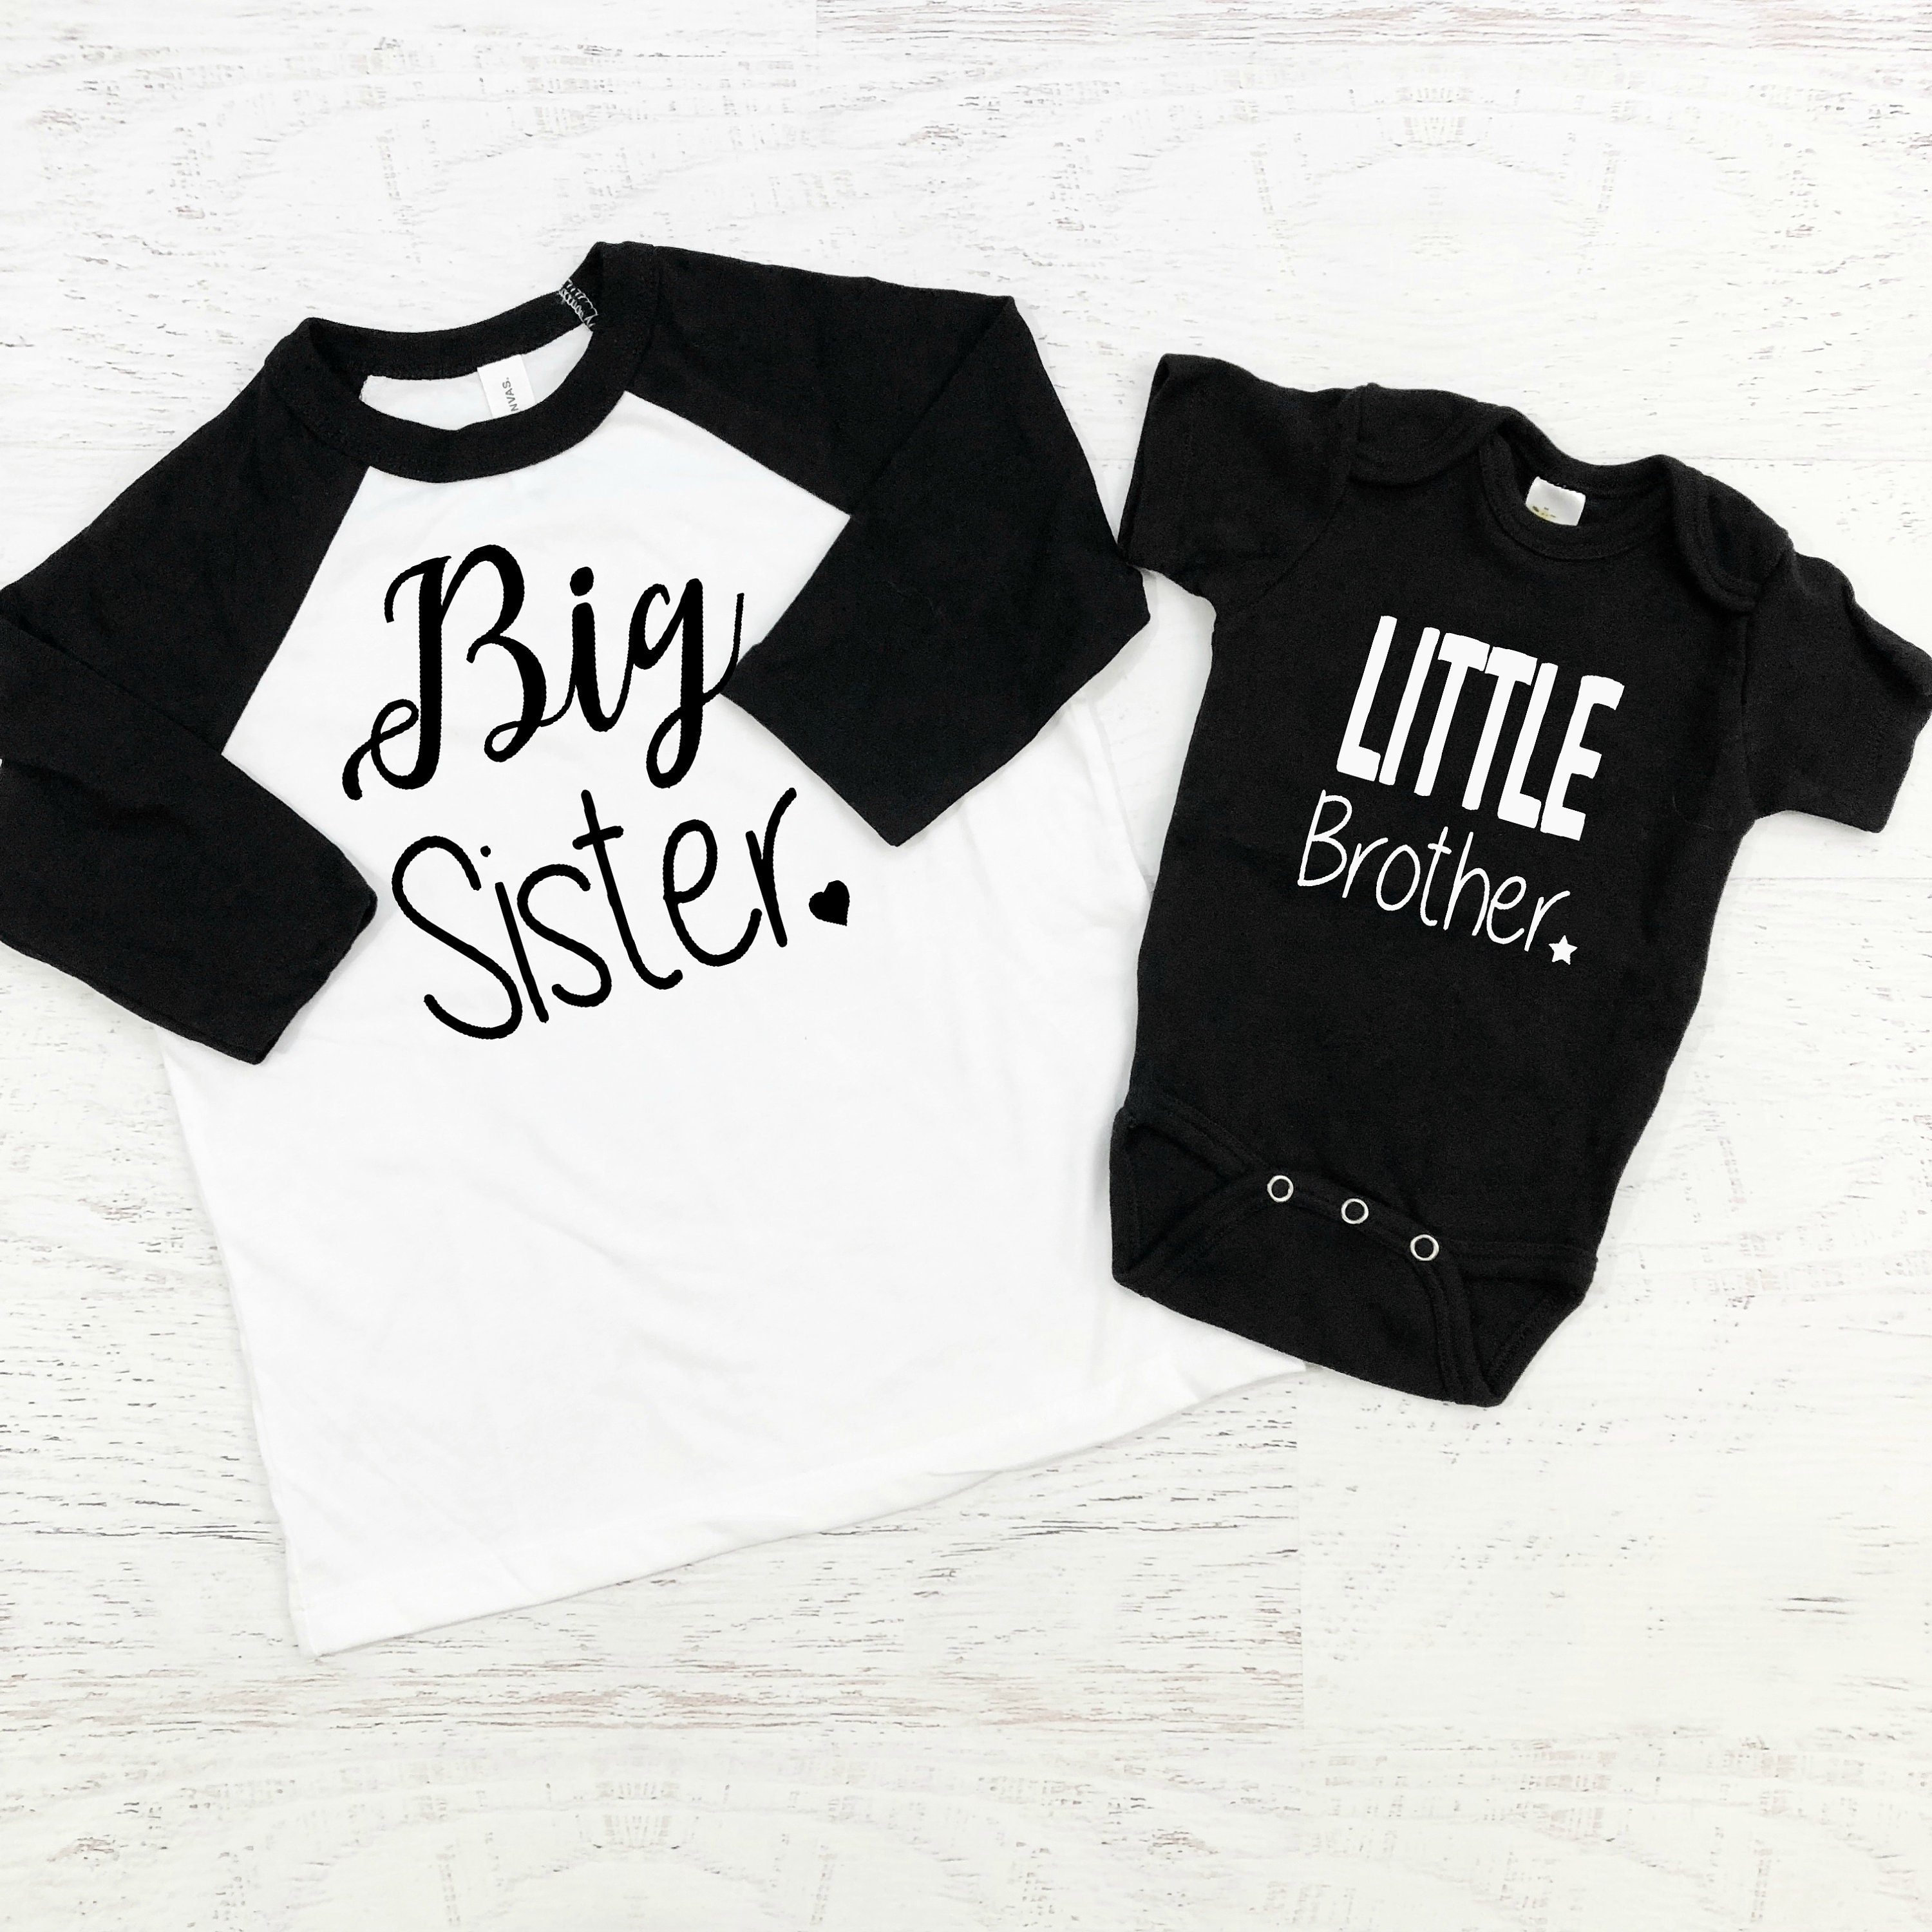 c5f624a14cb4 Big Sister Little Brother Sibling Shirts / Brother Sister Matching / Sibling  ...